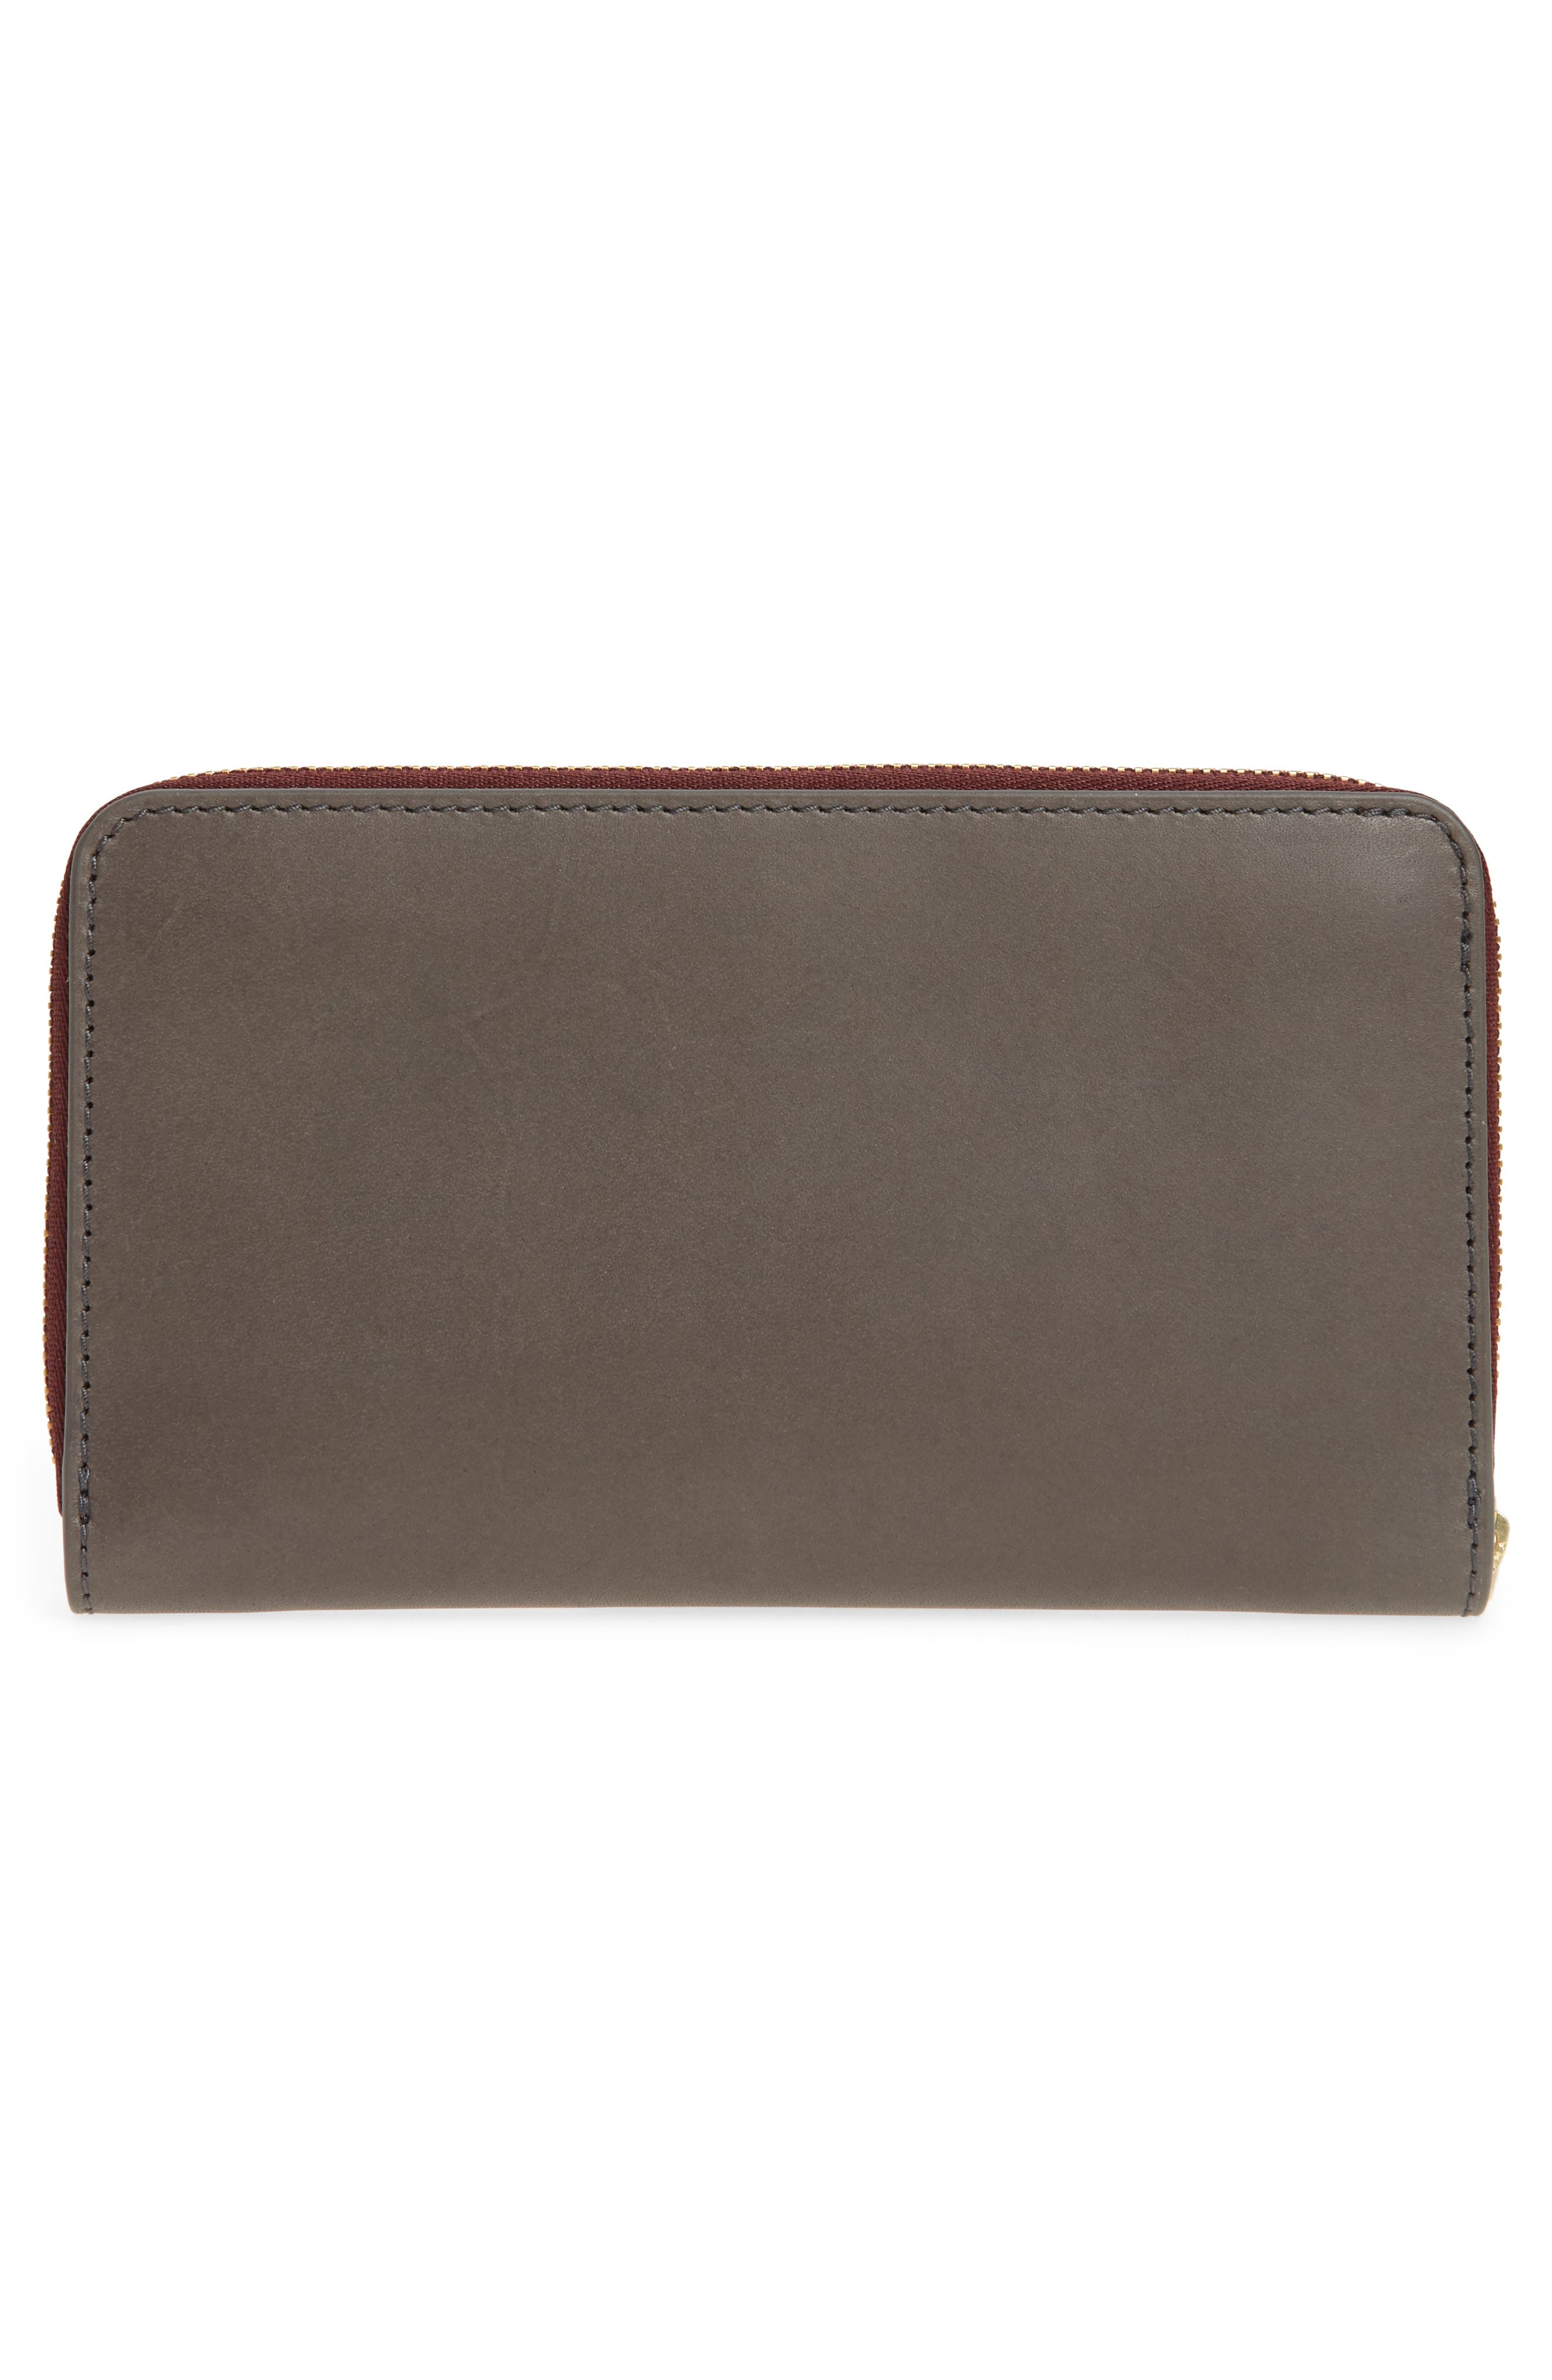 Compact Continental Wallet,                             Alternate thumbnail 3, color,                             021